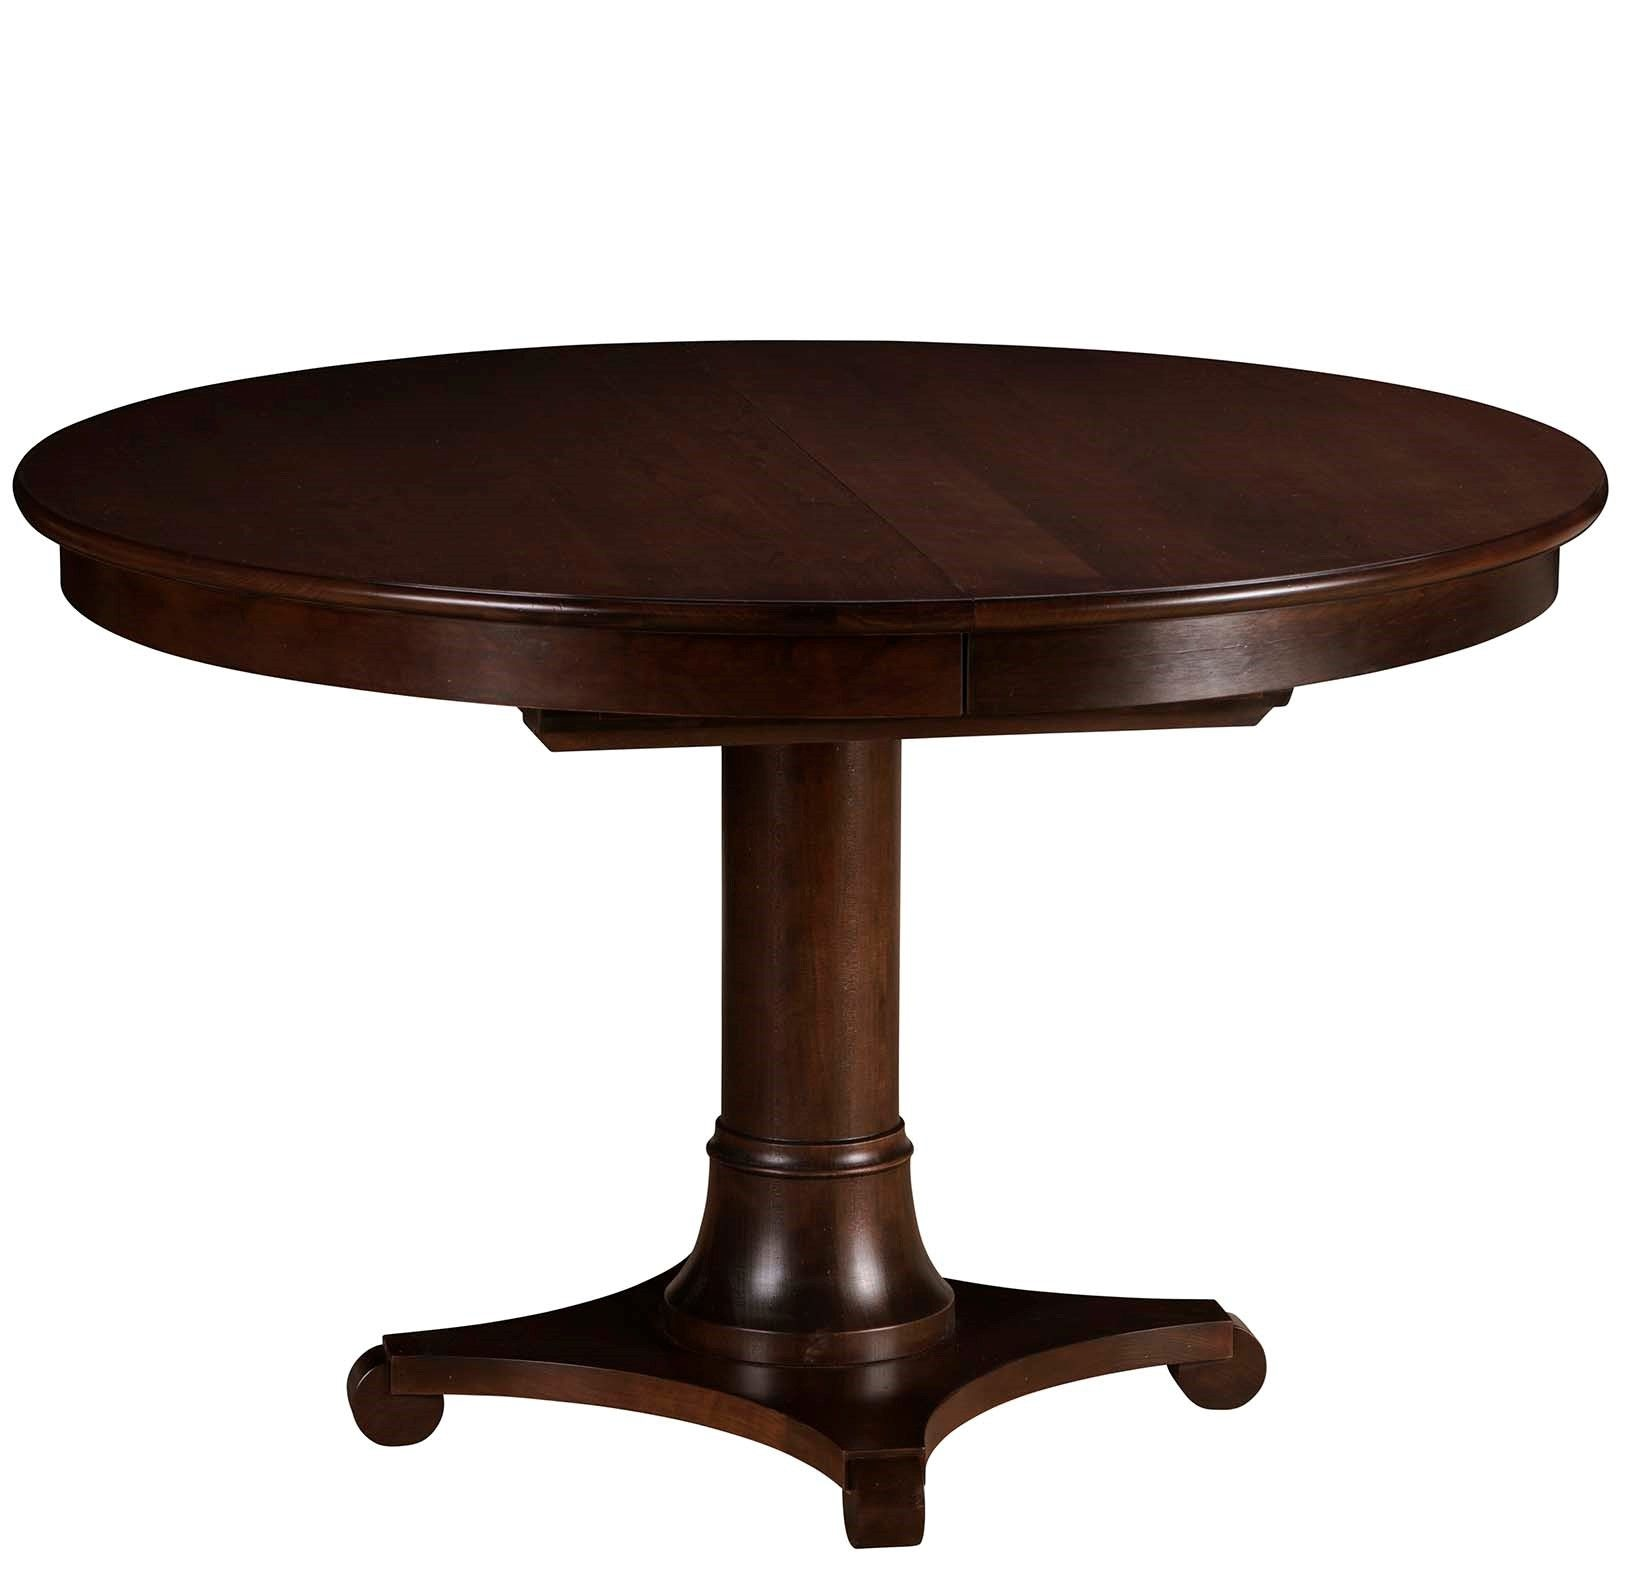 Gat Creek Dining Room Meyer 48 Round Pedestal Table With One 18